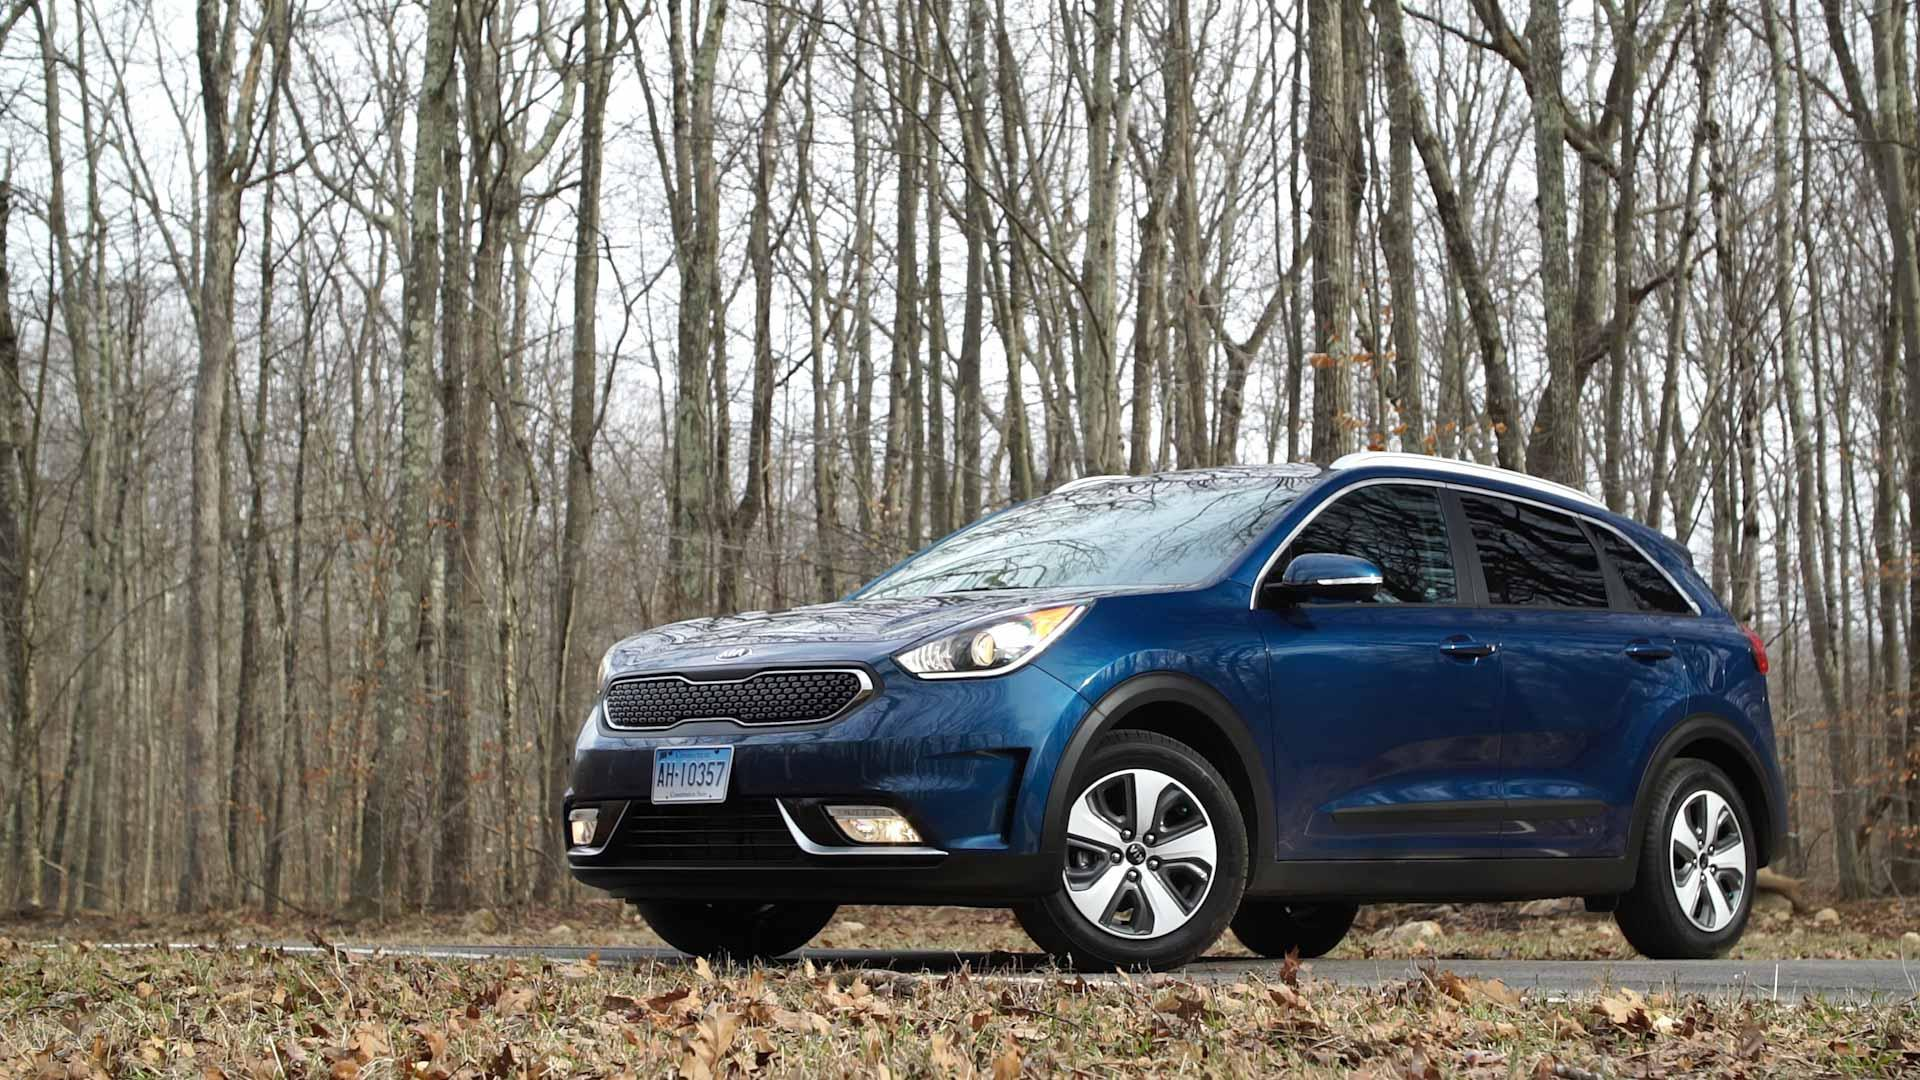 Consumer reports discusses kia niro hybrid and bmw 5 series